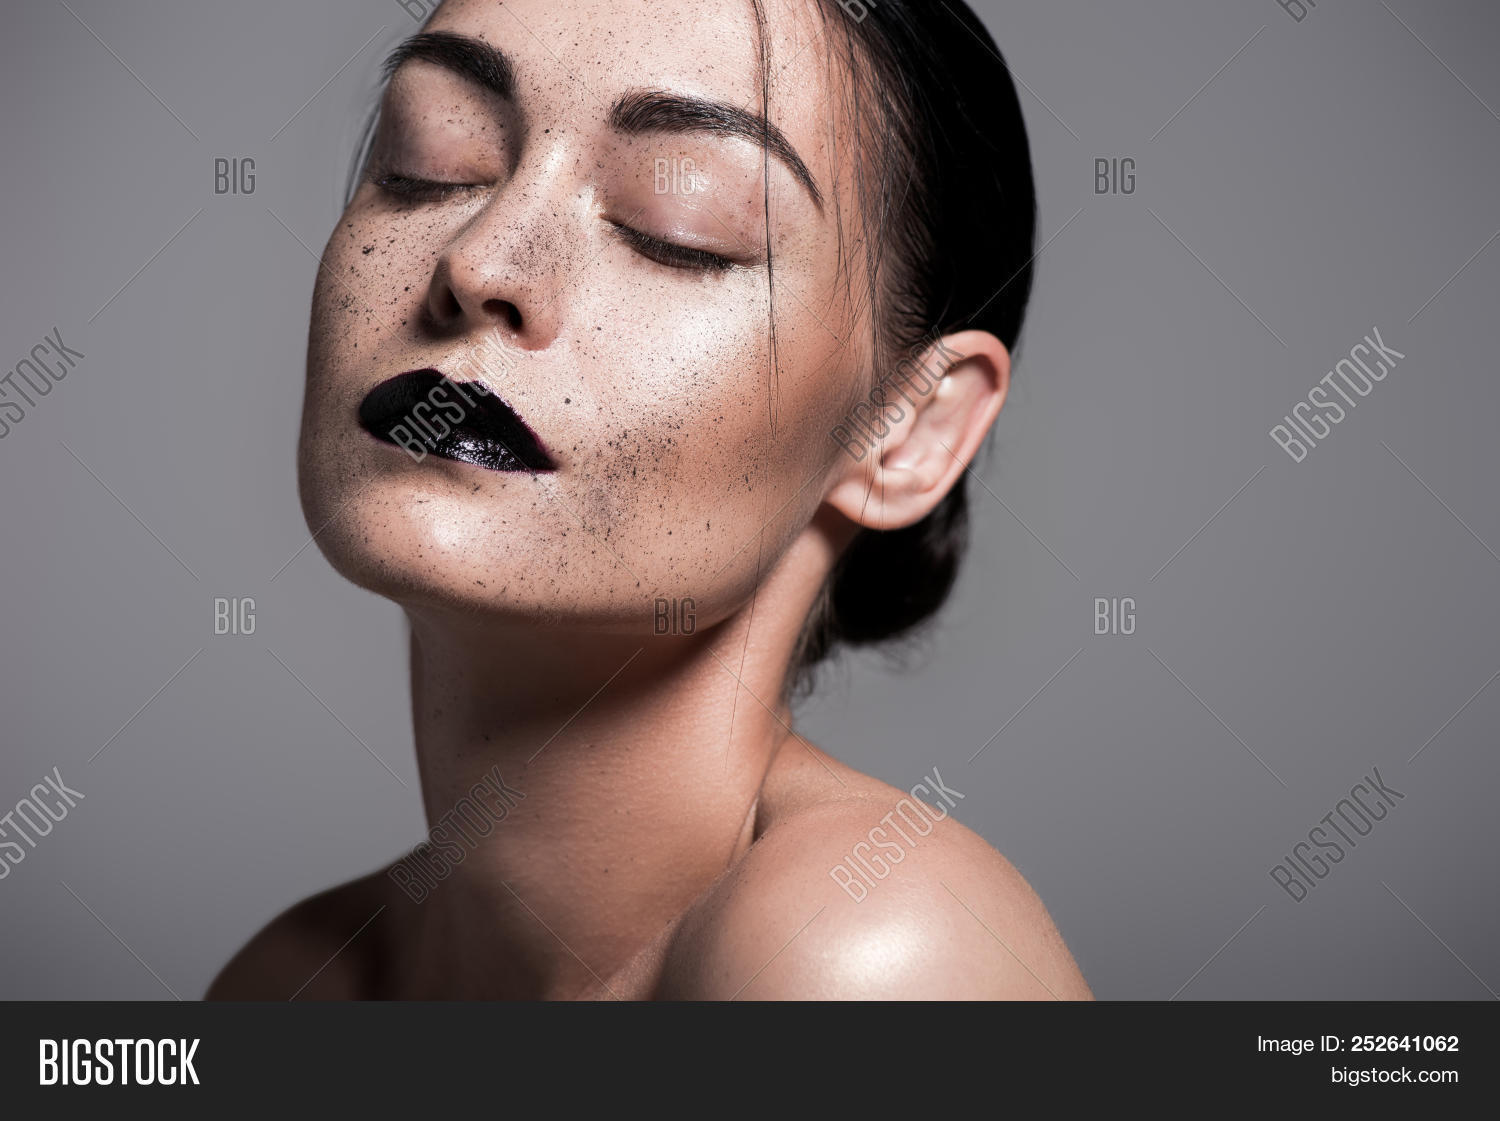 Freckled black girl naked Portrait Of Tender Nude Girl With Black Lips And Freckles Isolated On Grey Image Stock Photo 252641062